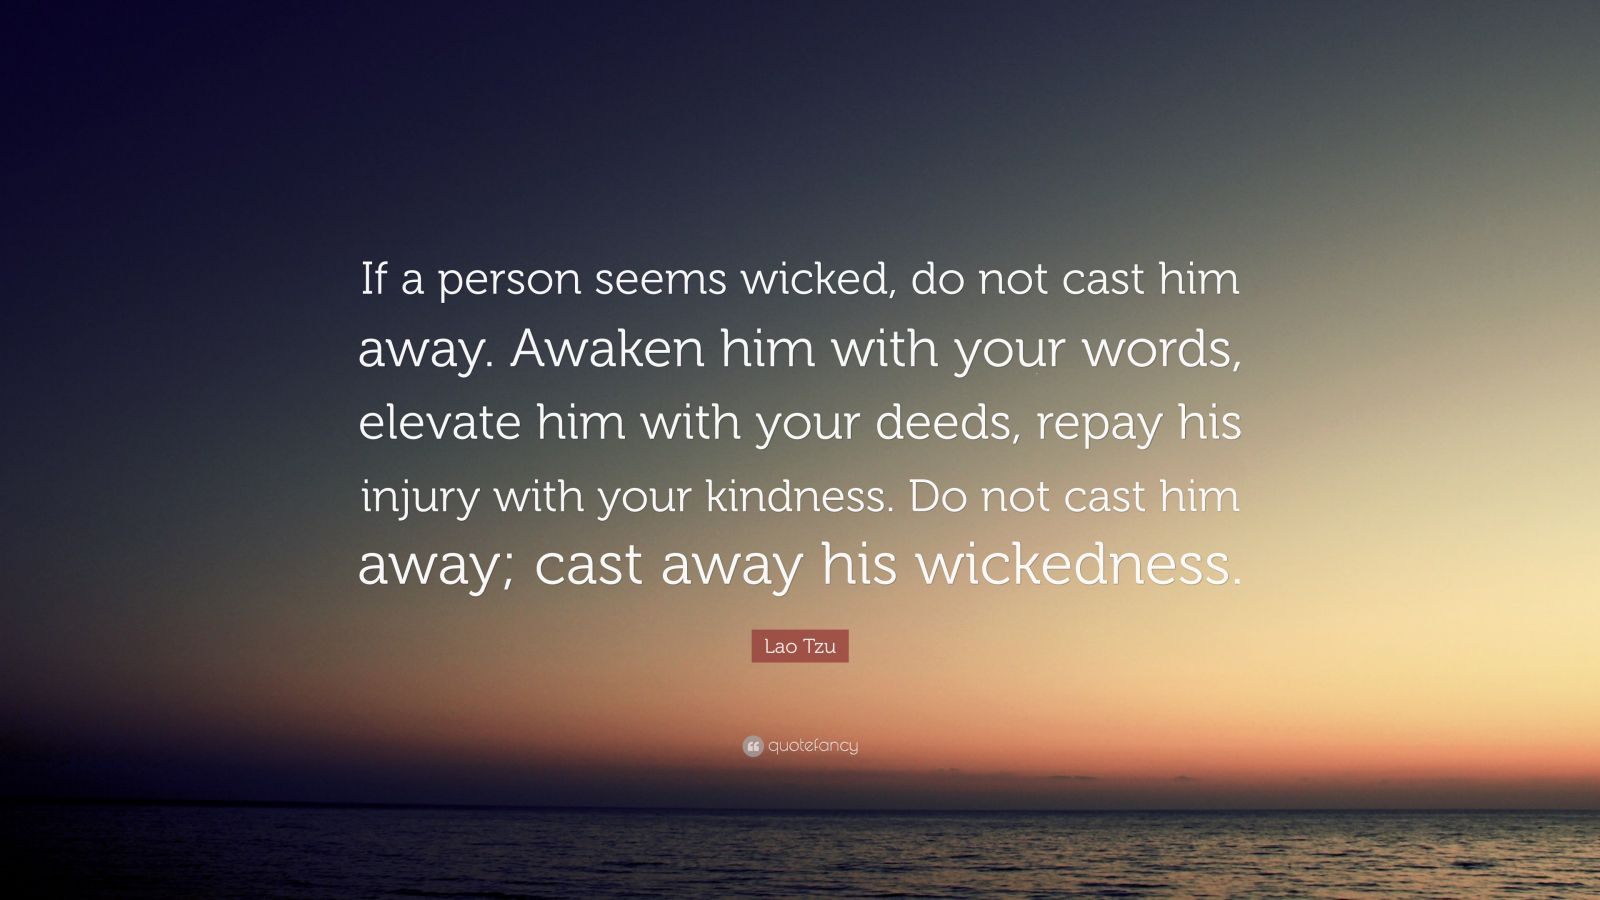 """Lao Tzu Quote: """"If a person seems wicked, do not cast him away. Awaken him with your words, elevate him with your deeds, repay his injury with your kindness. Do not cast him away; cast away his wickedness."""""""